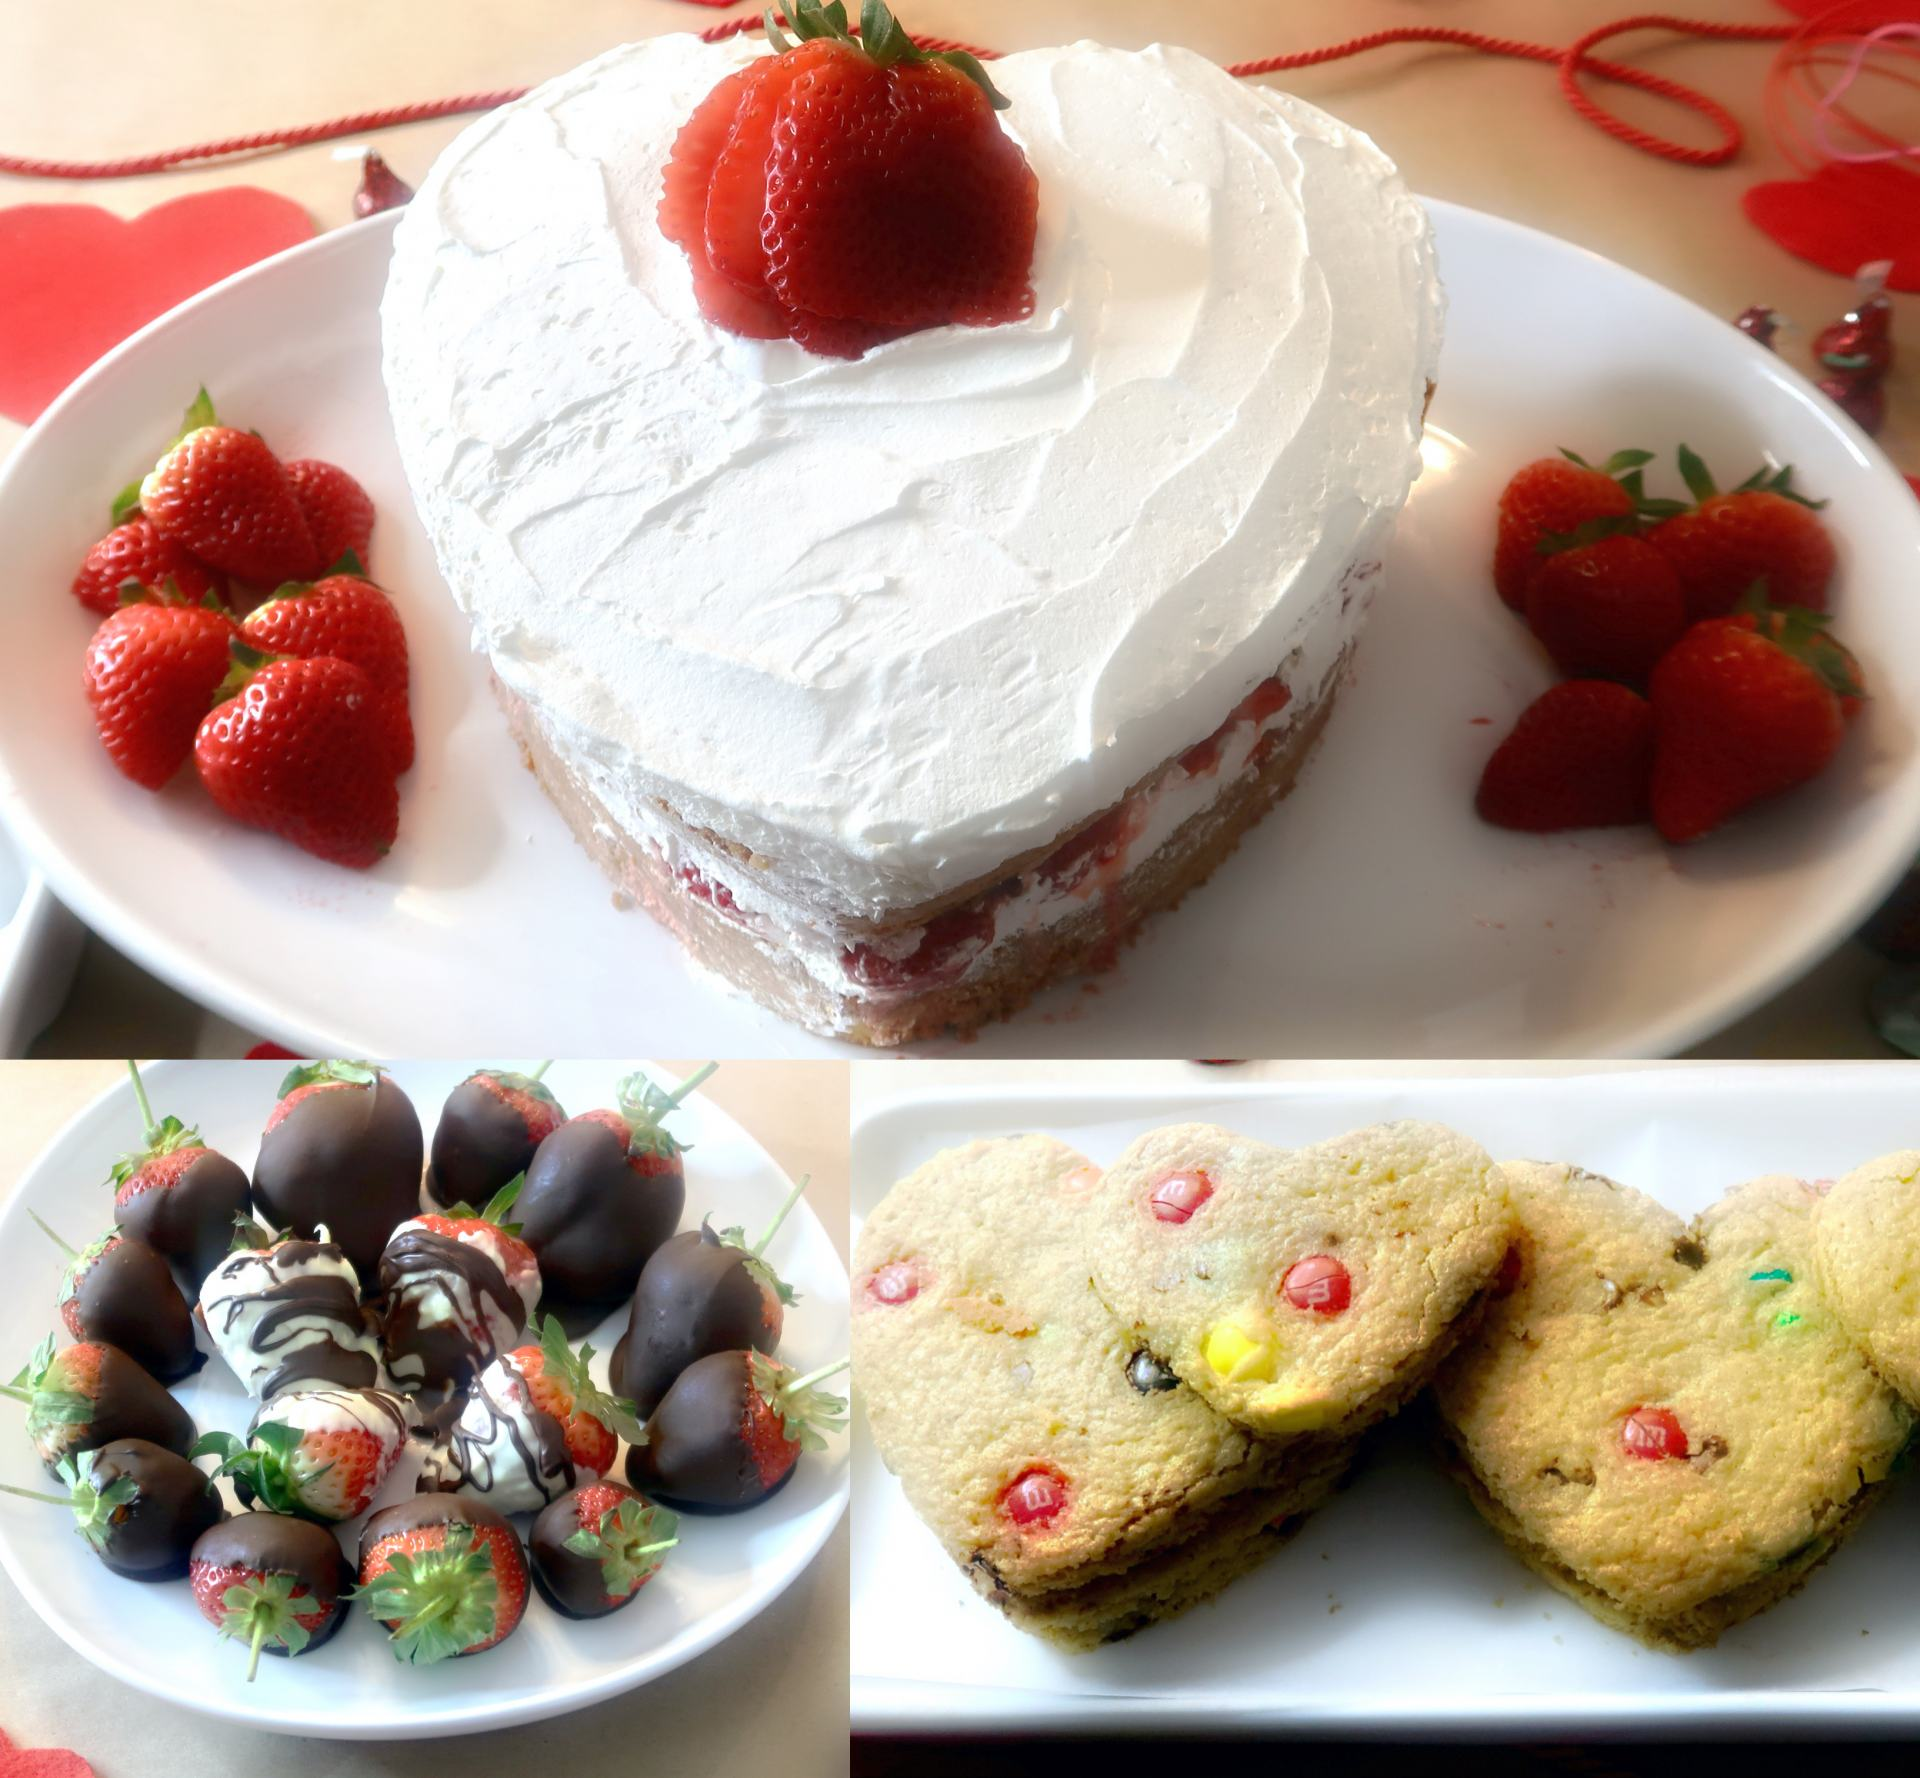 Sweet Treats for Valentine's Day